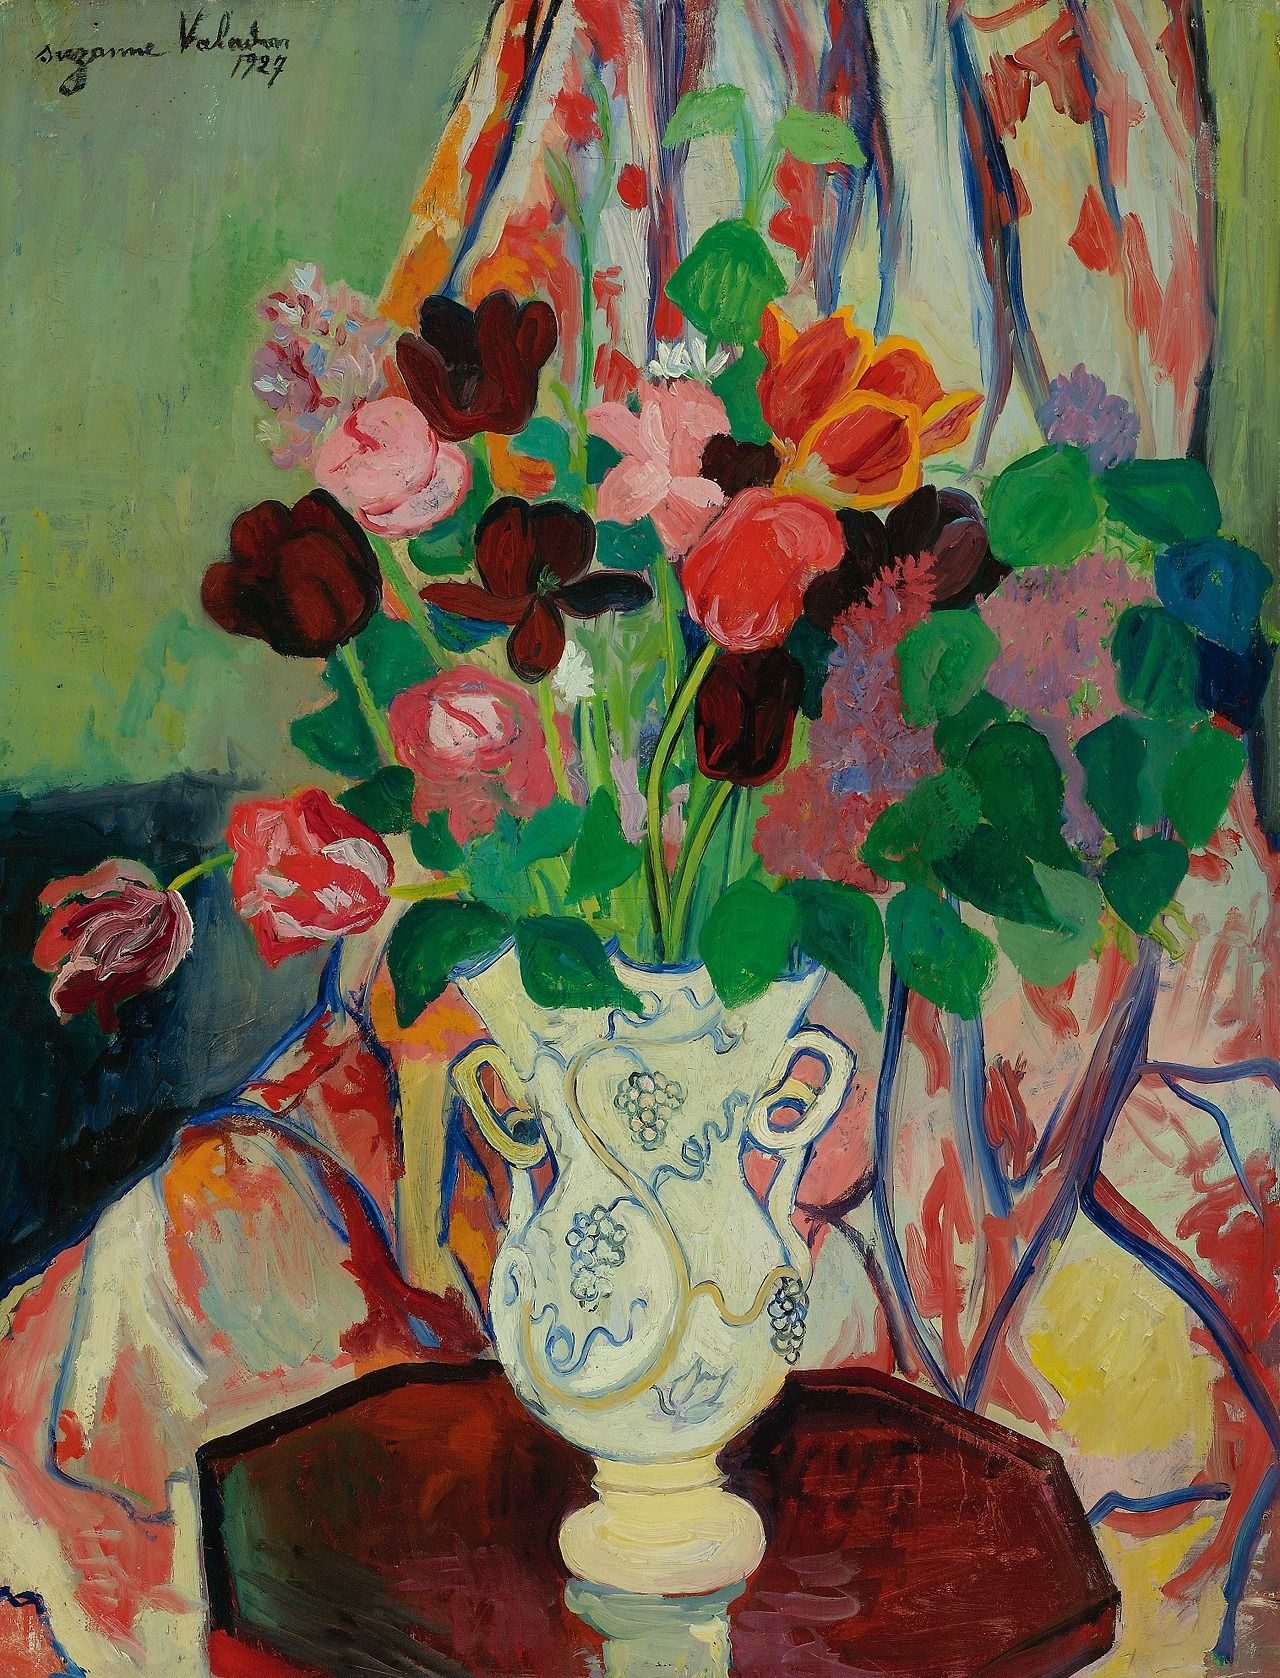 Suzanne Valadon Bouquet of Tulips 1927